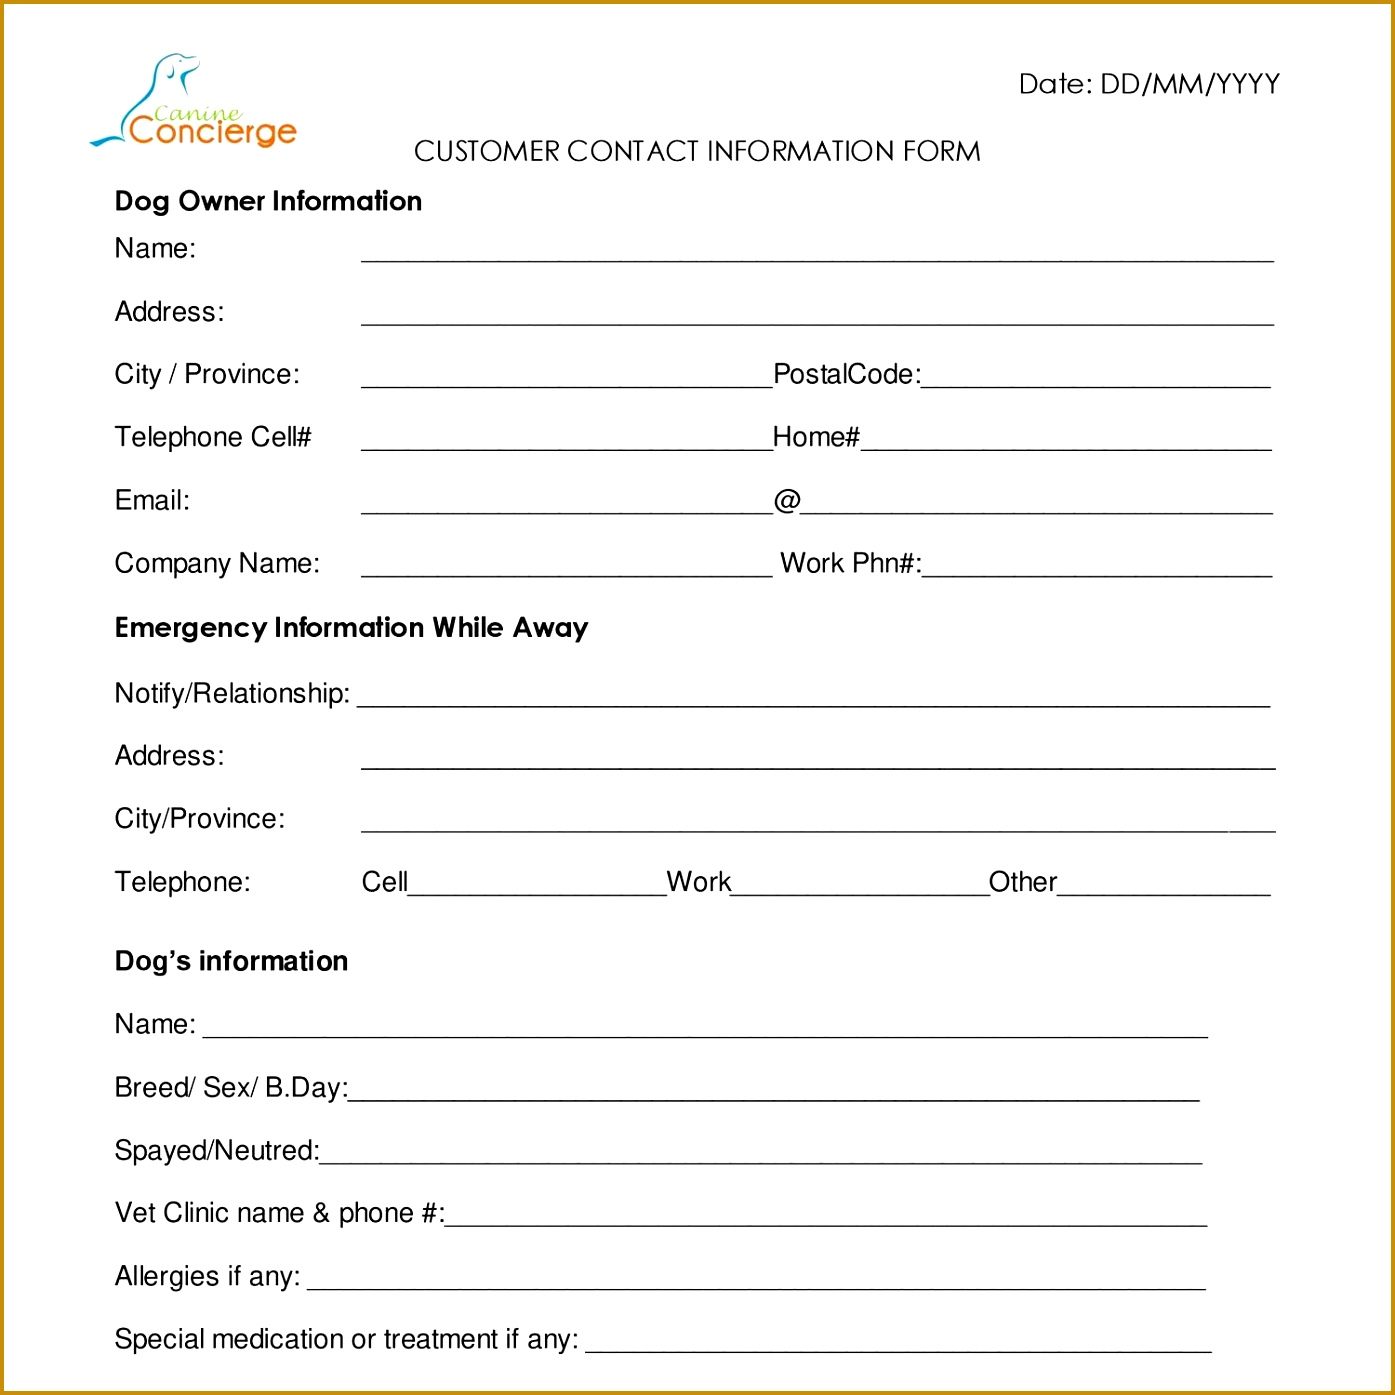 Audition Form Template Eliolera Resume Format Download Free Pdf Customer Contact Info Form Canineconcierge Audition Form 13951395